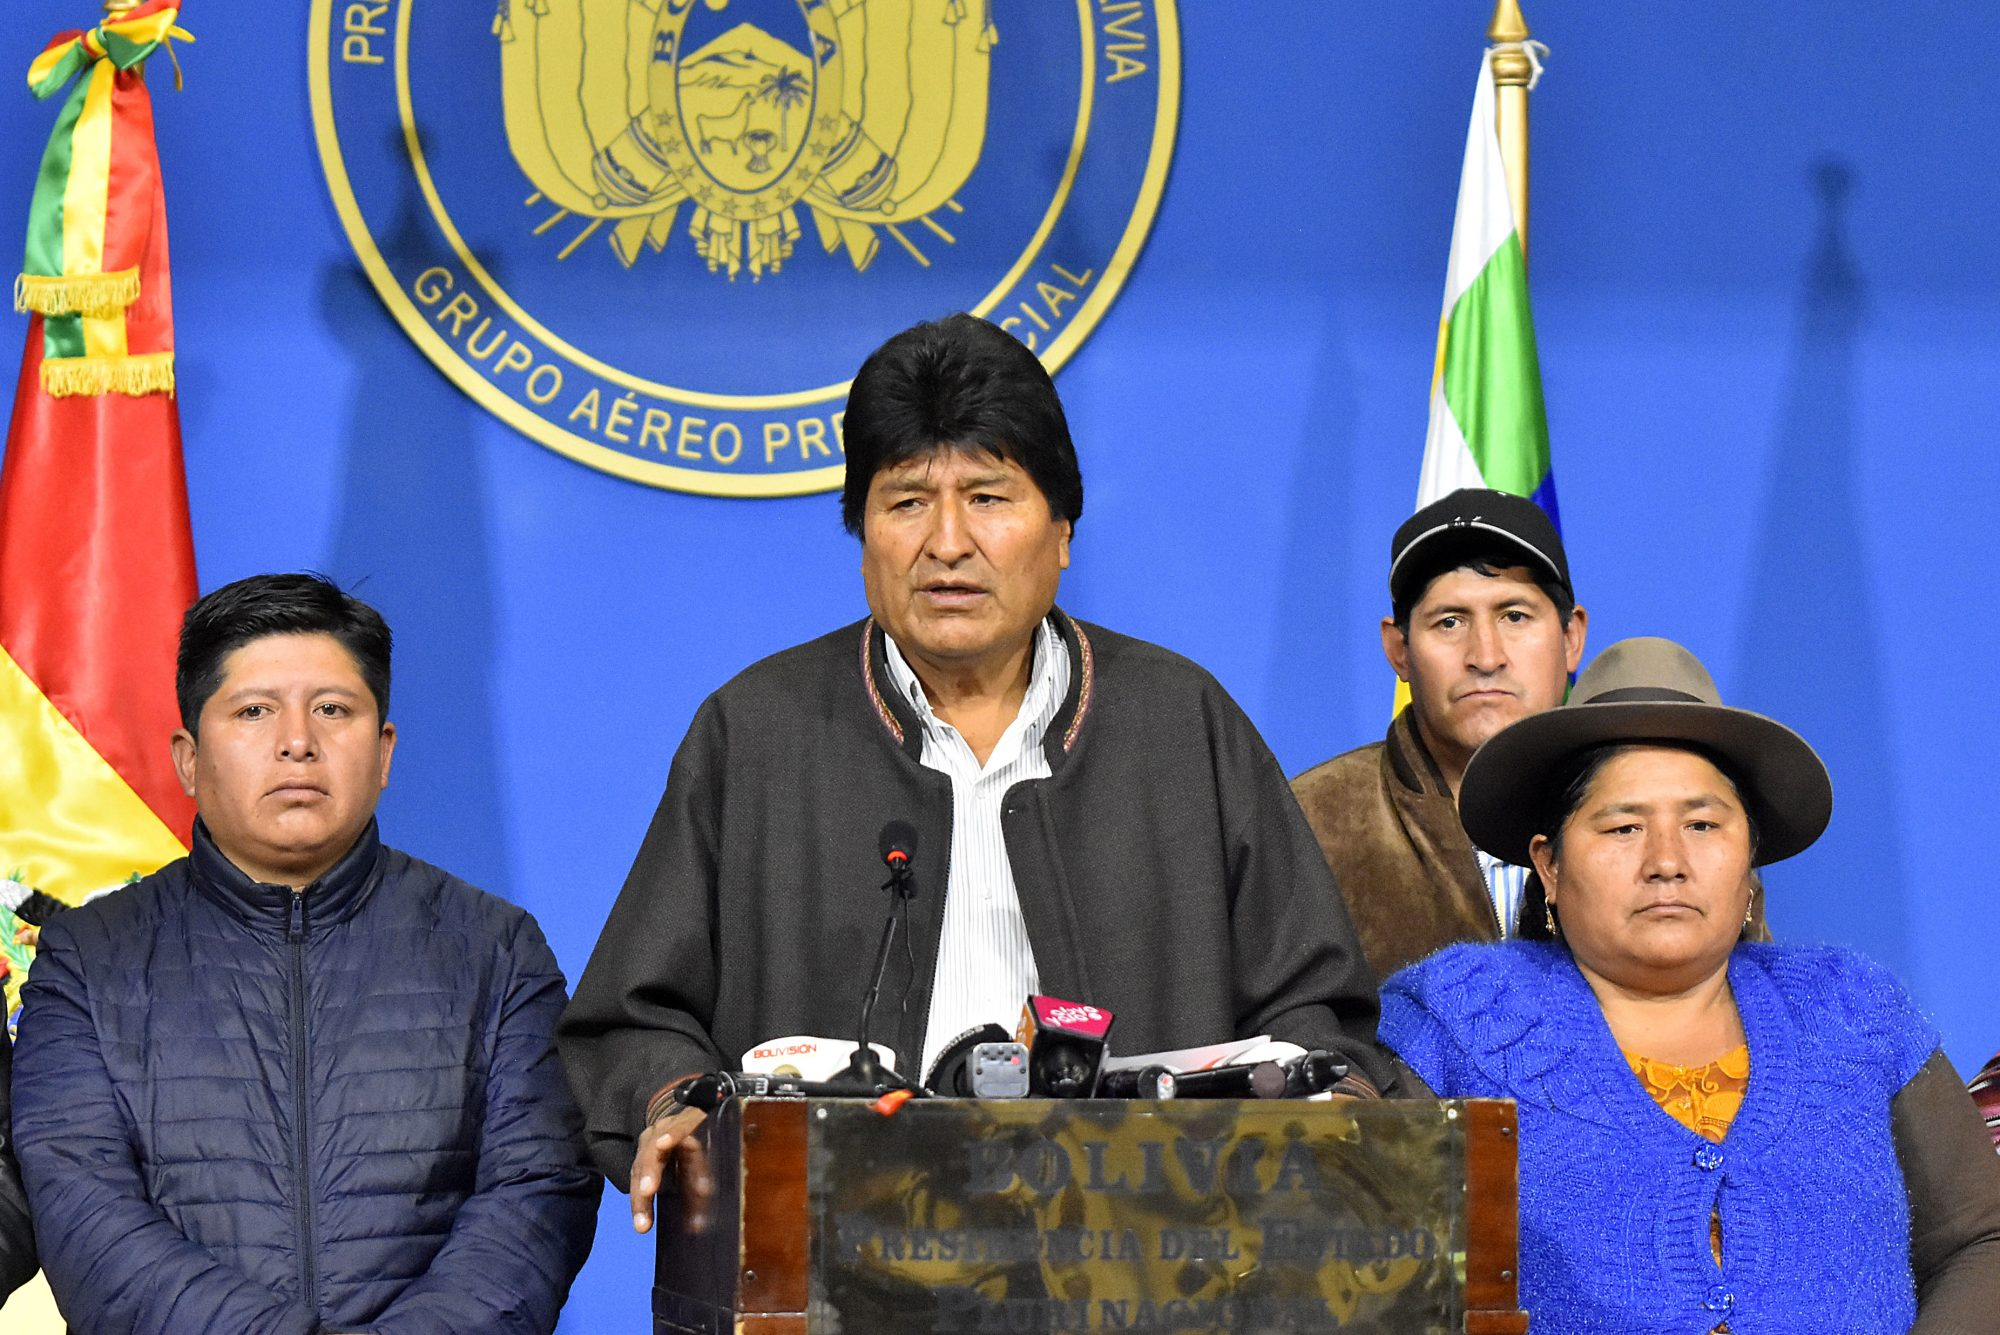 Political Turmoil in Bolivia: Morales Calls For New Elections And Later Resigns